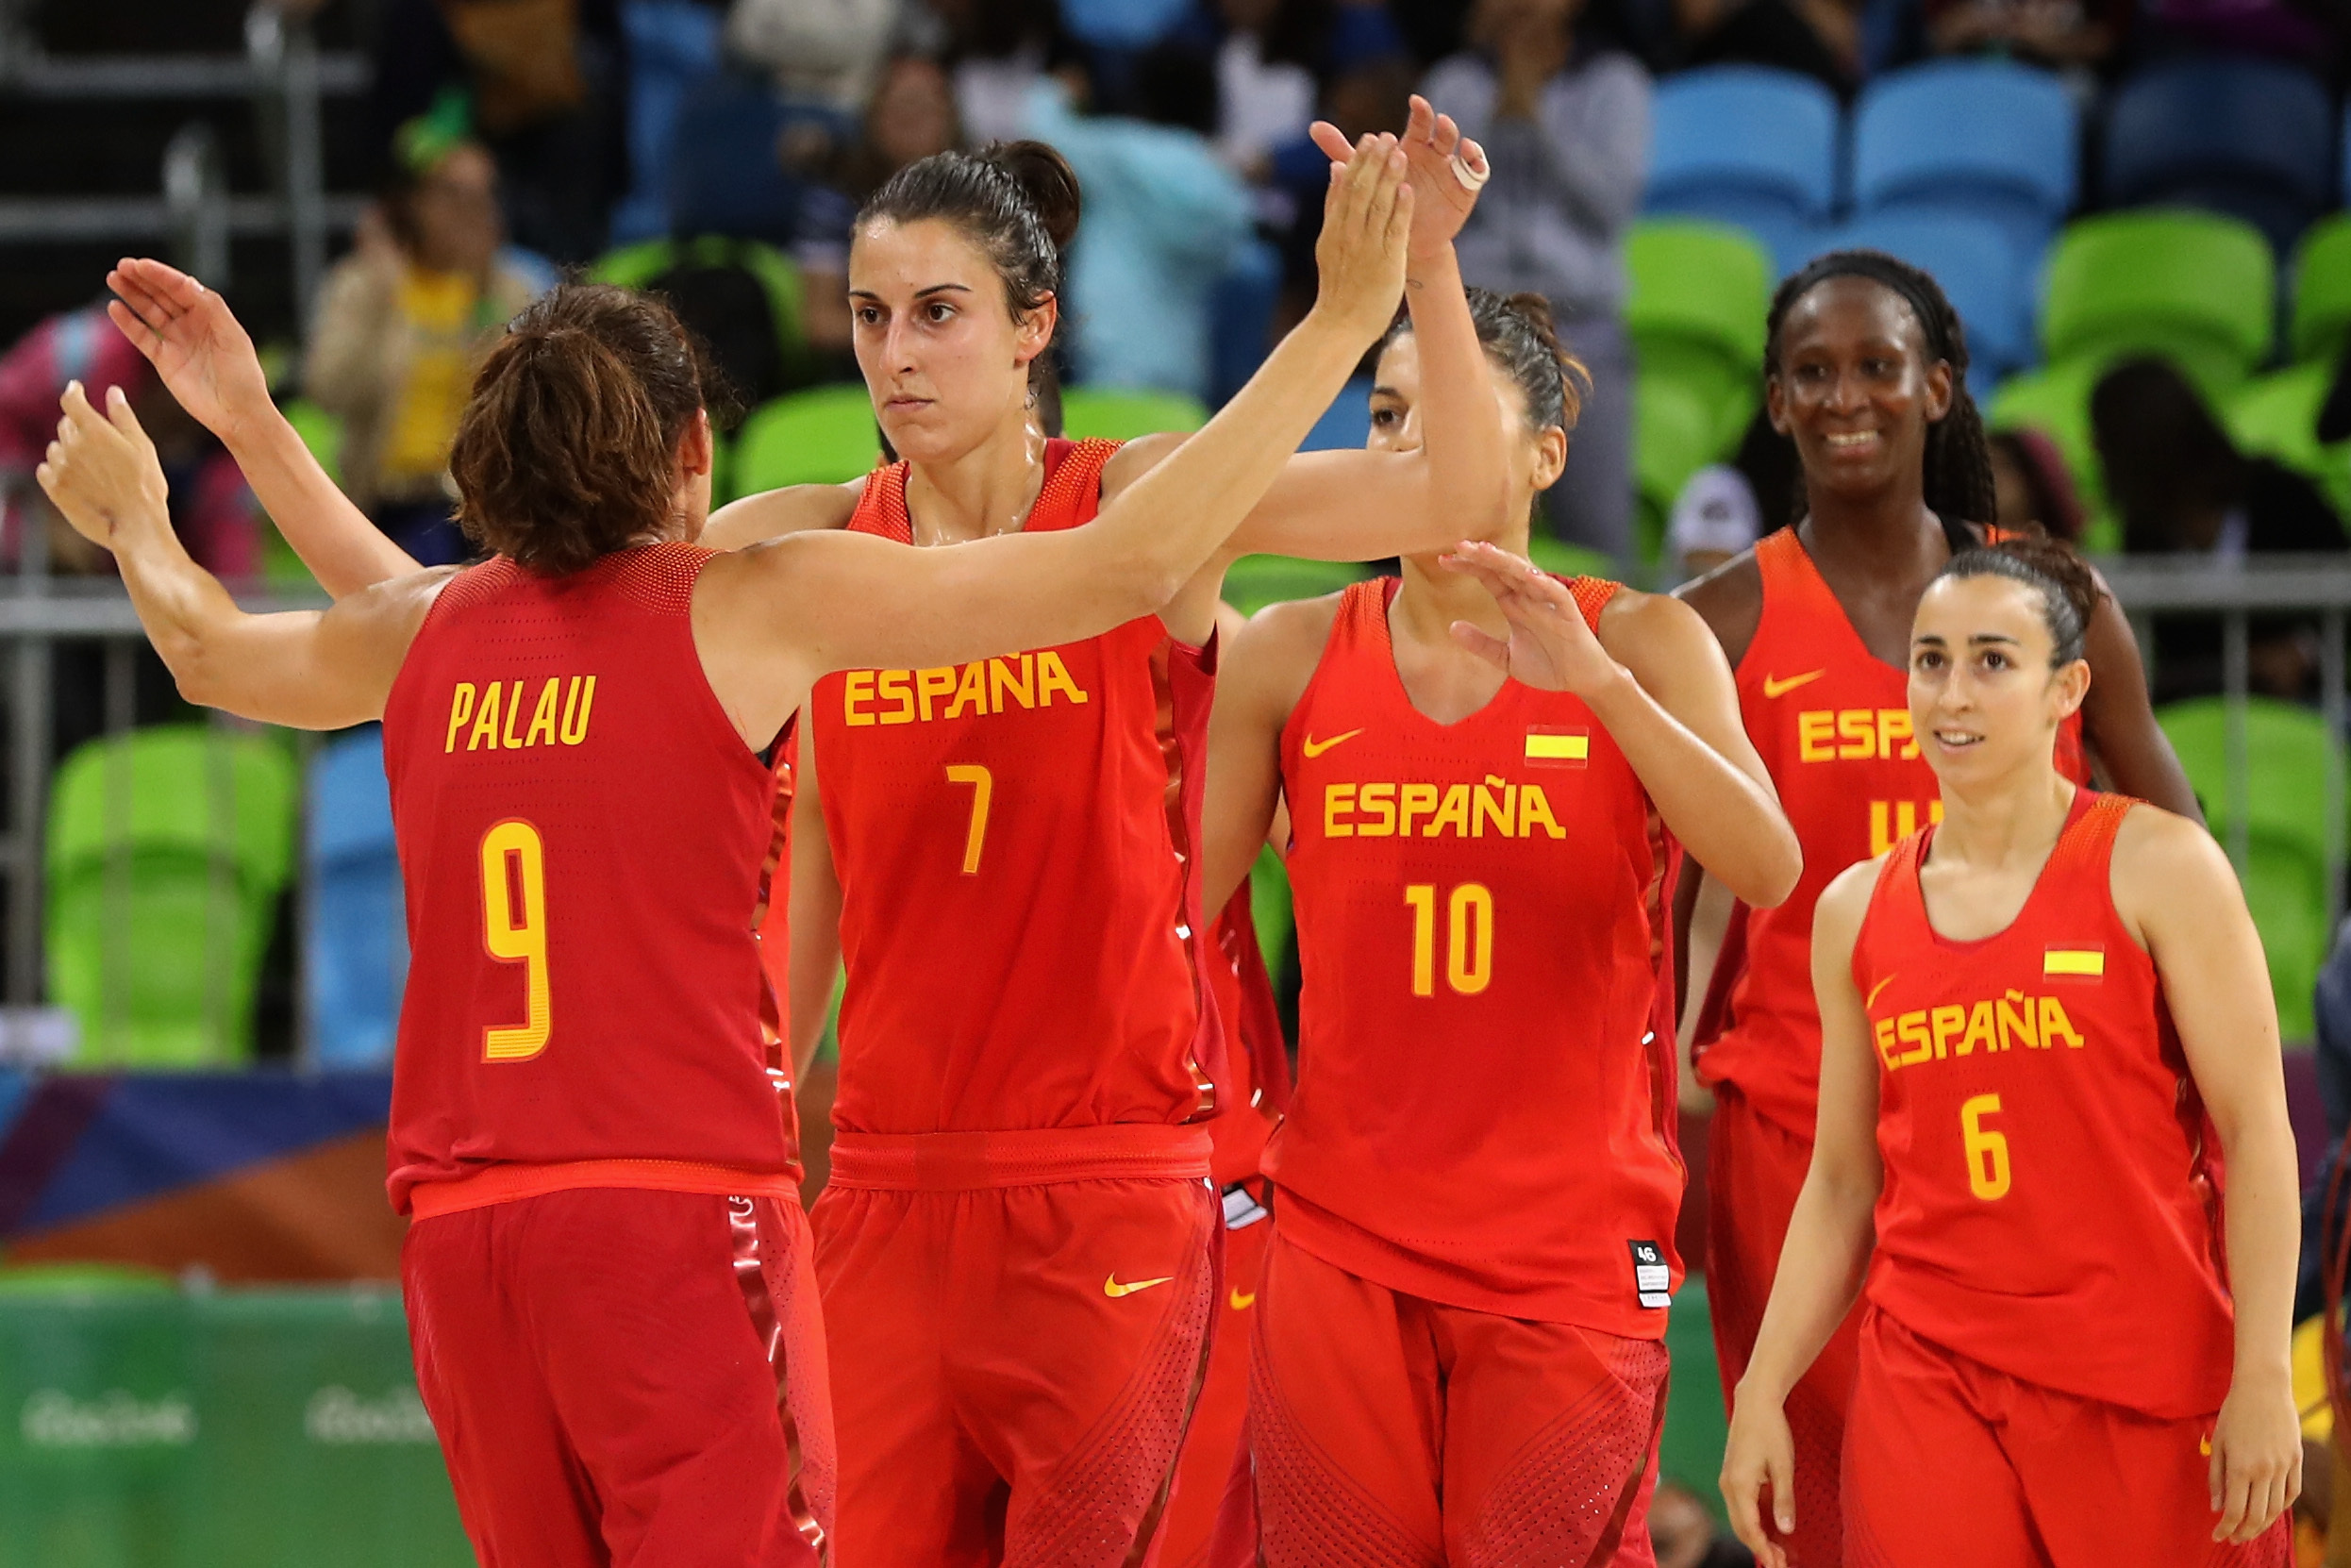 Olympic Basketball 2016 Scores Highlights And Reaction For Wednesday S Results Bleacher Report Latest News Videos And Highlights Listen to boris chen | soundcloud is an audio platform that lets you listen to what you love and share the 4 followers. bleacher report